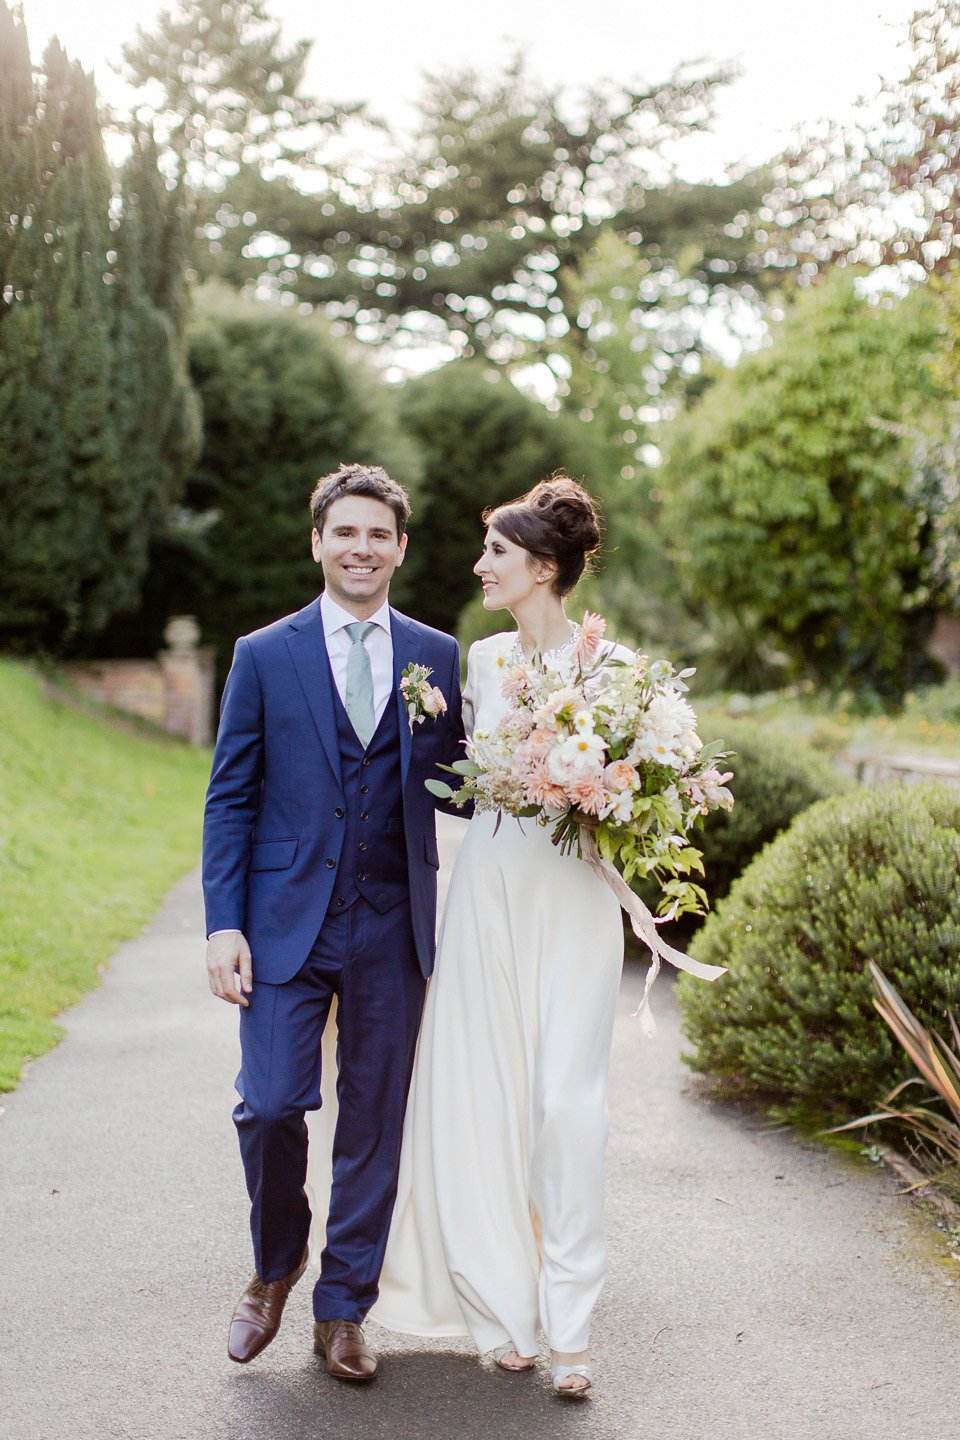 Jesus Peiro and Jenny Packham for an Ethereal and Elegant Autumn Wedding